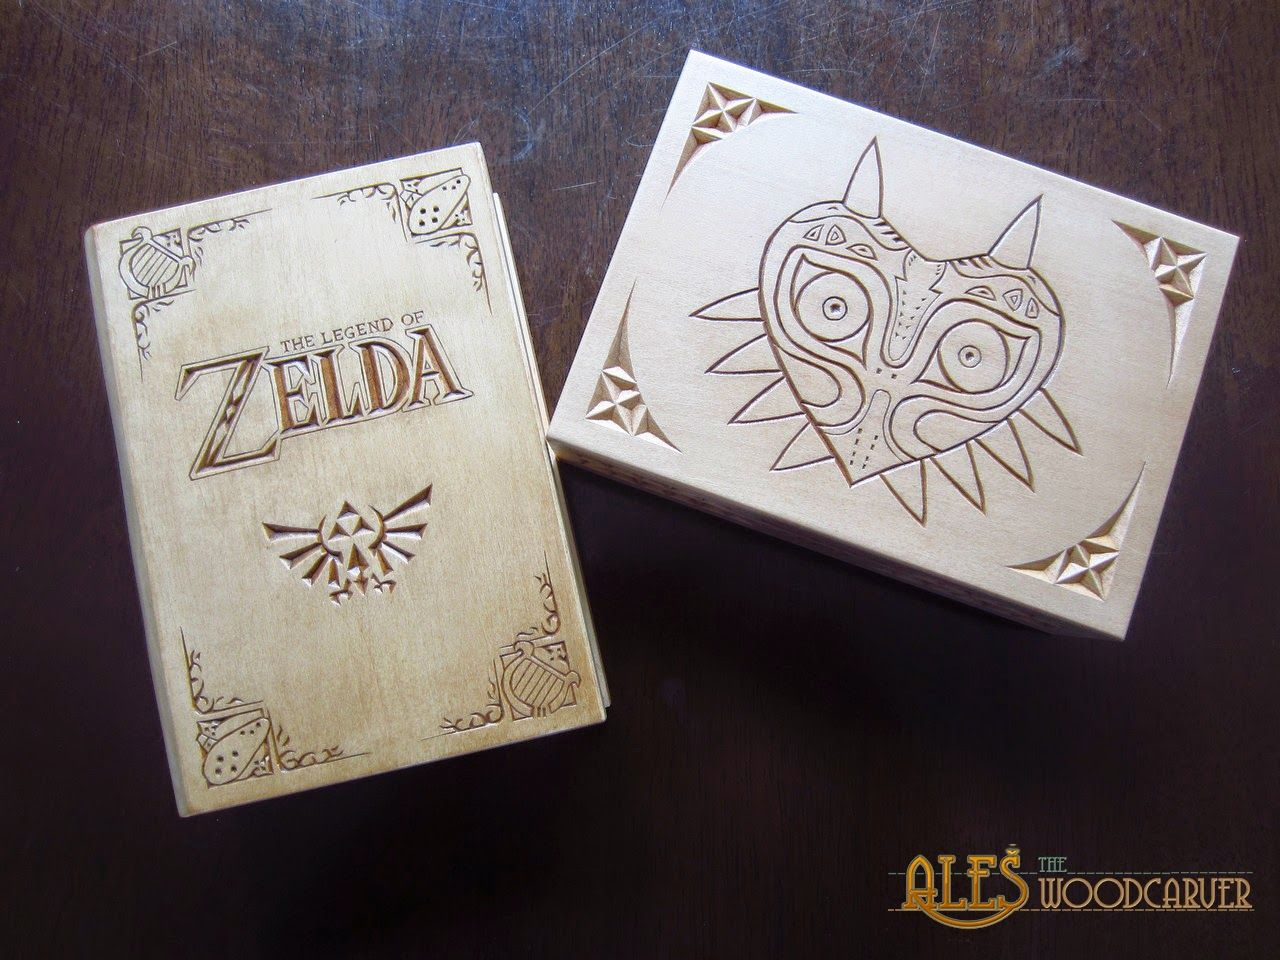 Legend of zelda trinket boxes chip carved wood carving